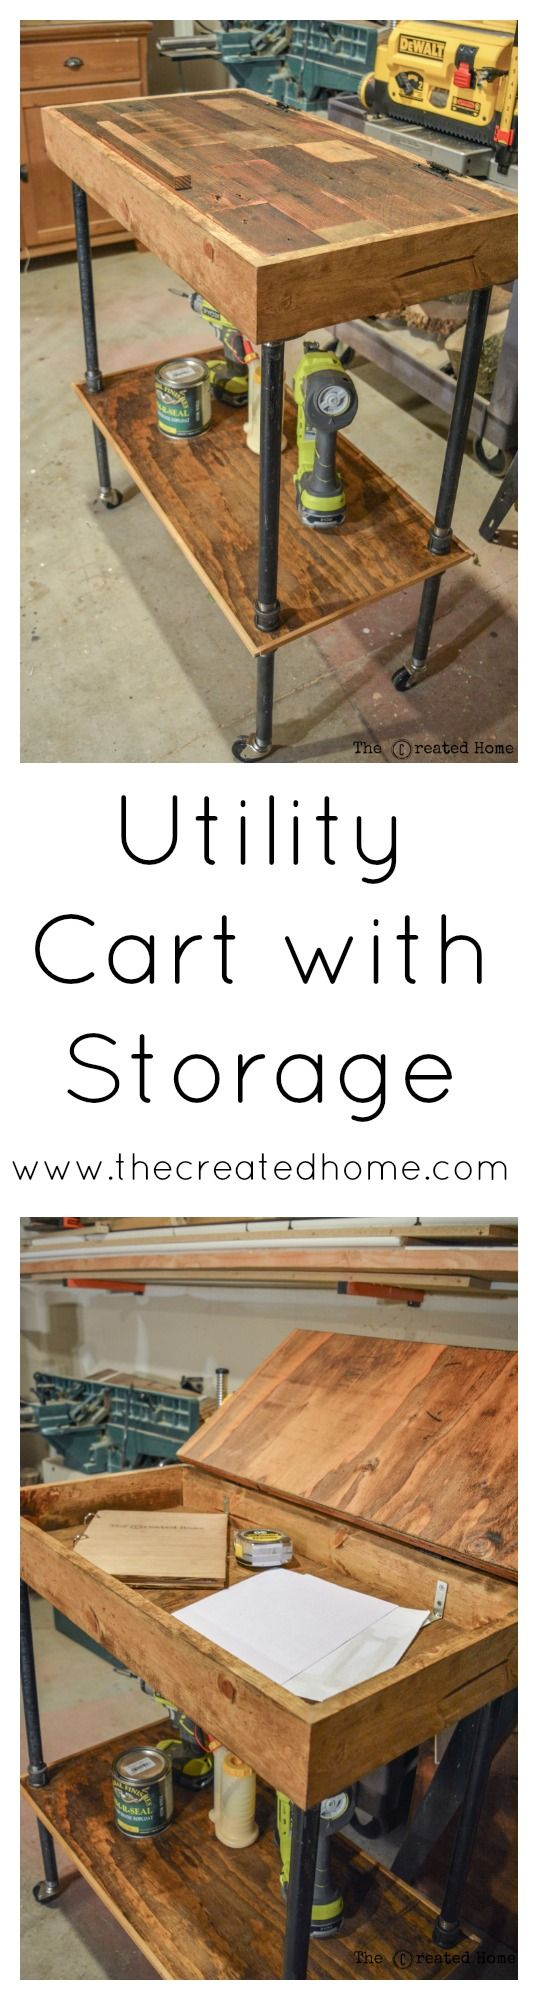 How to build a mobile storage cart that doubles as a desk. Perfect for the home or shop!